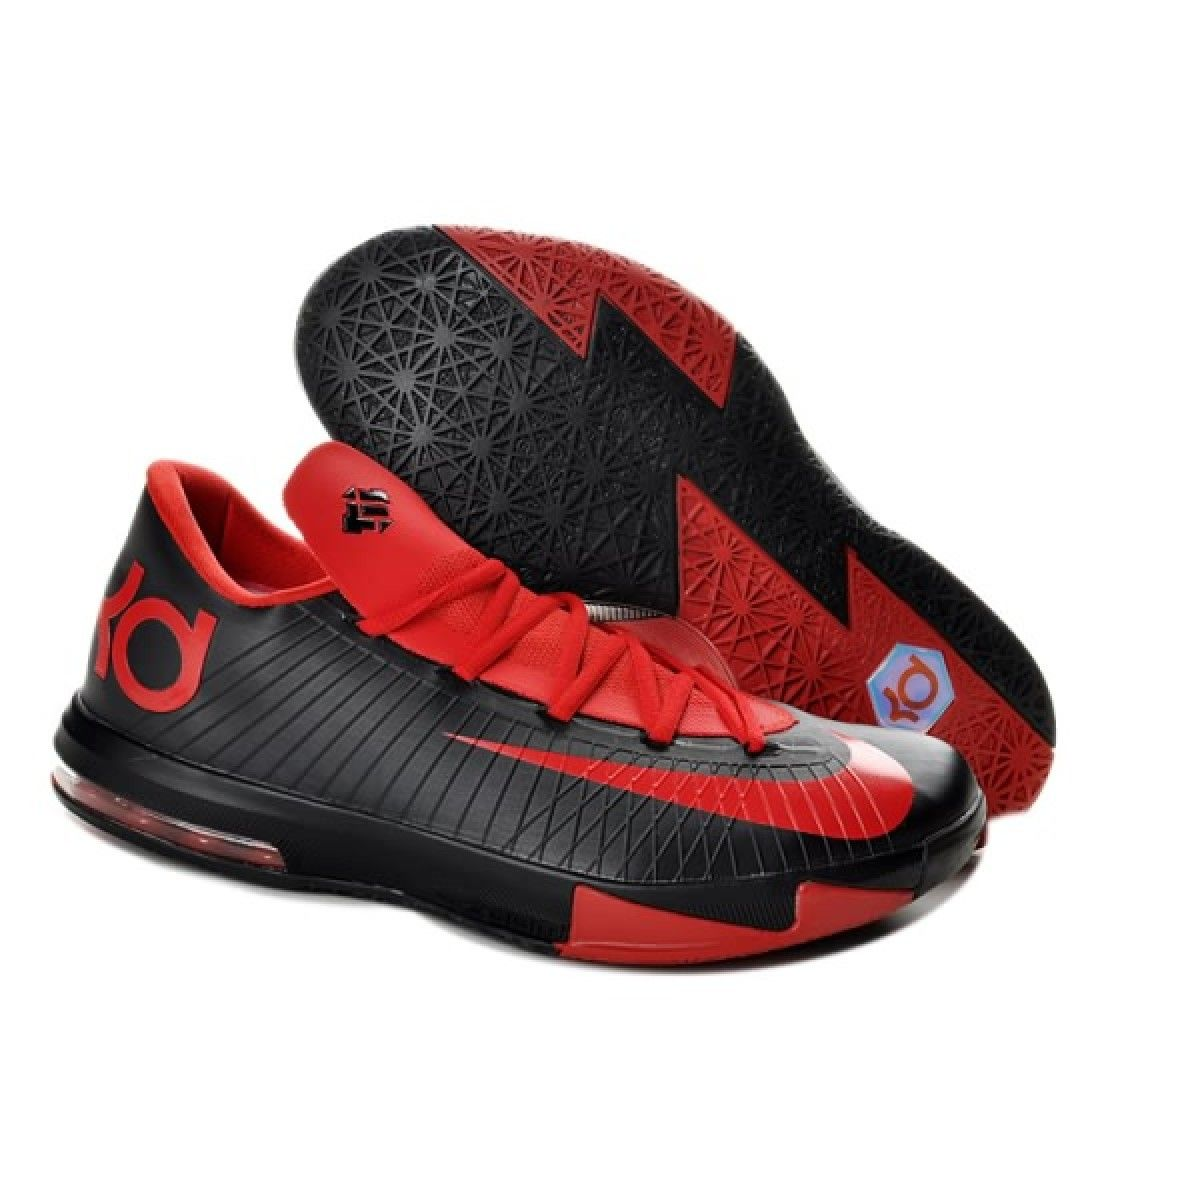 Red Black Nike Zoom KD 6 Low Kevin Durant Shoes For Wholesale Shoes store  sell the cheap Nike KD VI online, it is high quality Nike KD VI sneakers  and we ...